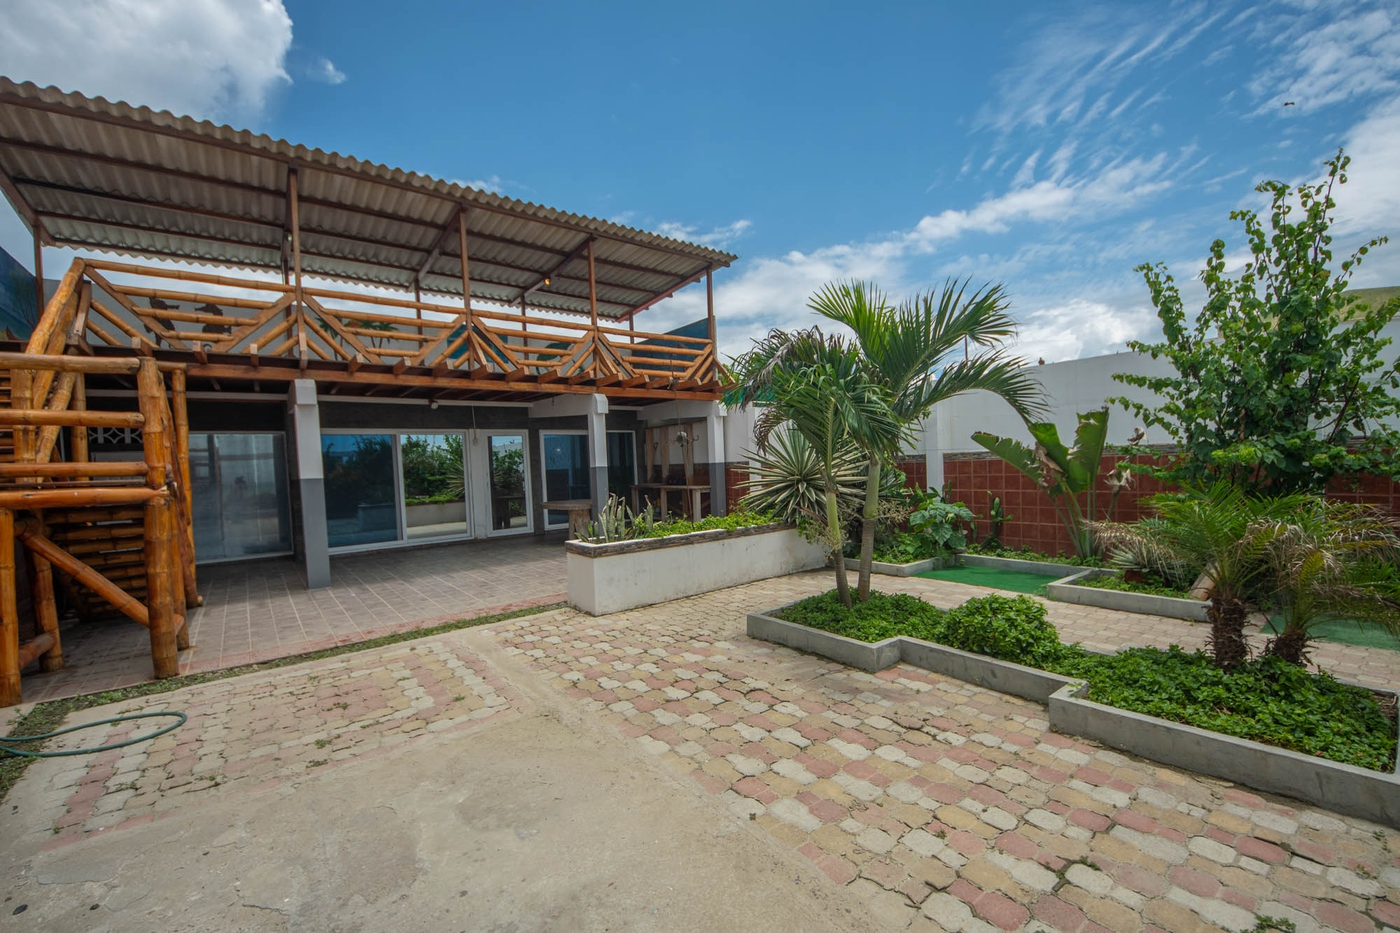 <p>Hot Price! This beachfront home is located in …